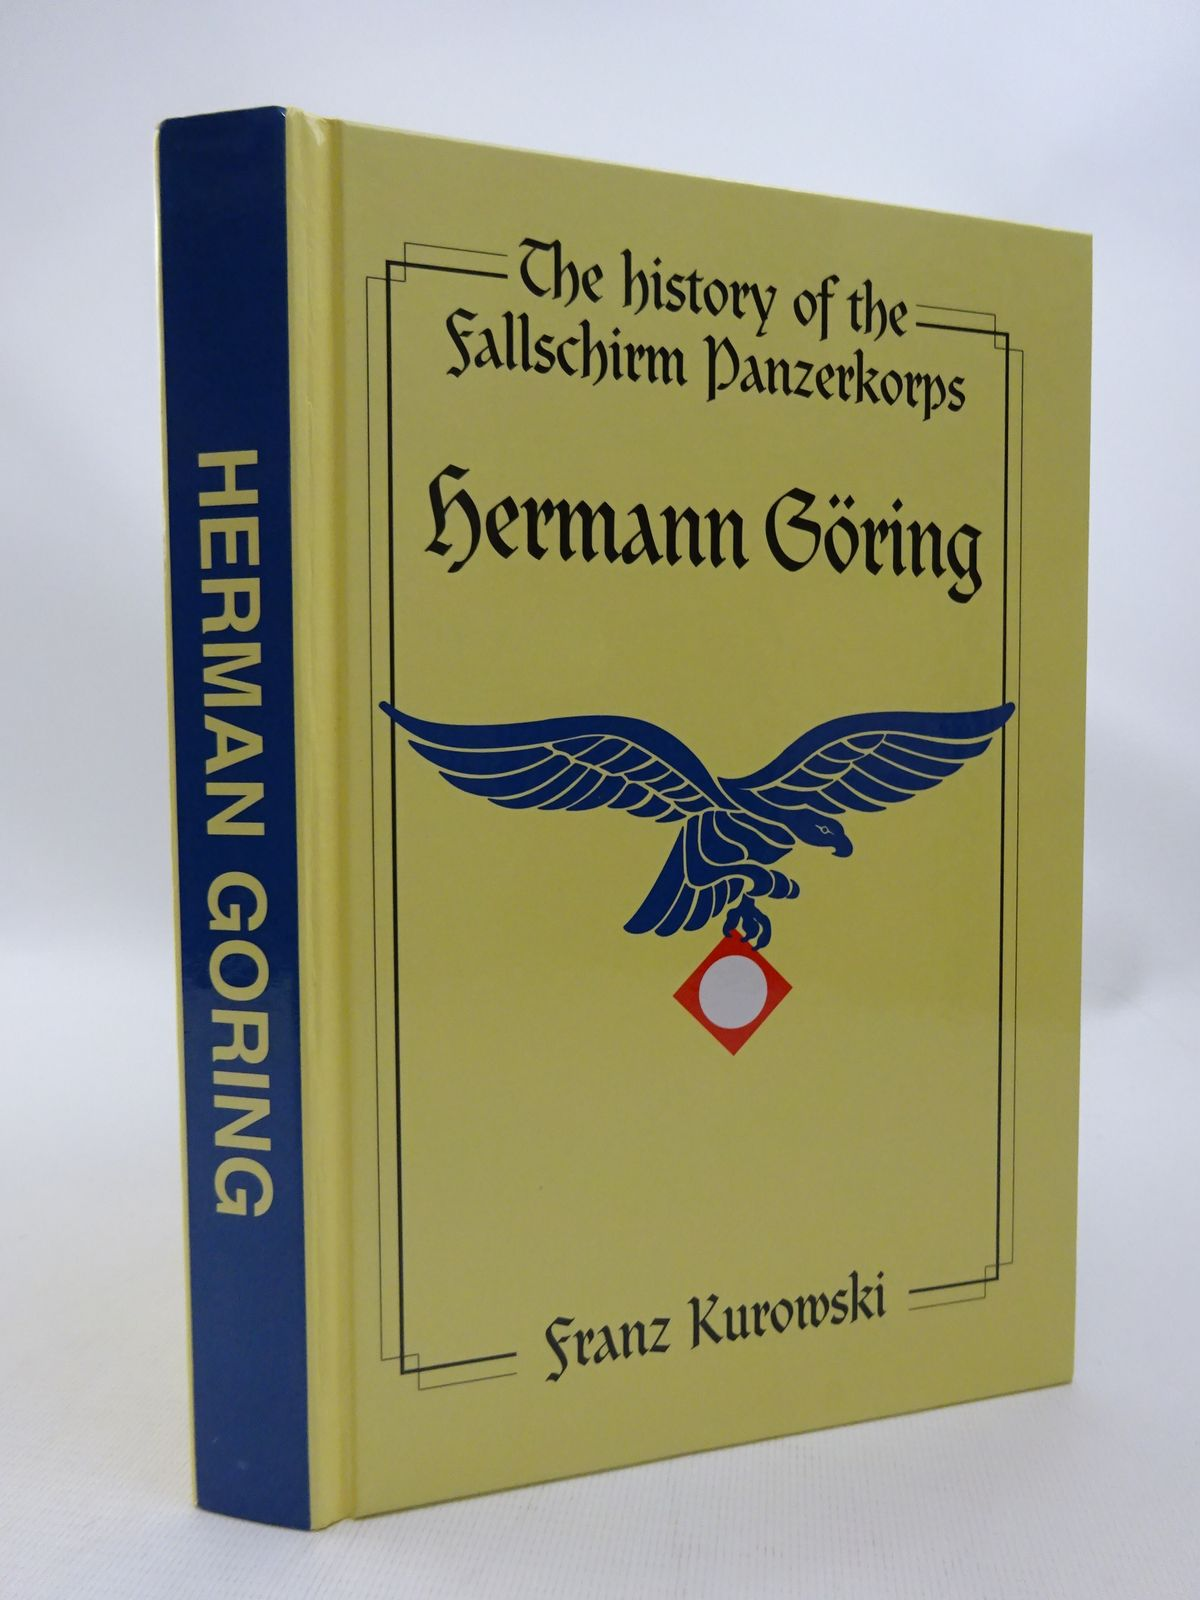 Photo of THE HISTORY OF THE FALLSCHIRMPANZERKORPS HERMANN GORING SOLDIERS OF THE REICHMARSCHALL written by Kurowski, Franz published by J.J. Fedorowicz Publishing, Inc. (STOCK CODE: 1815495)  for sale by Stella & Rose's Books